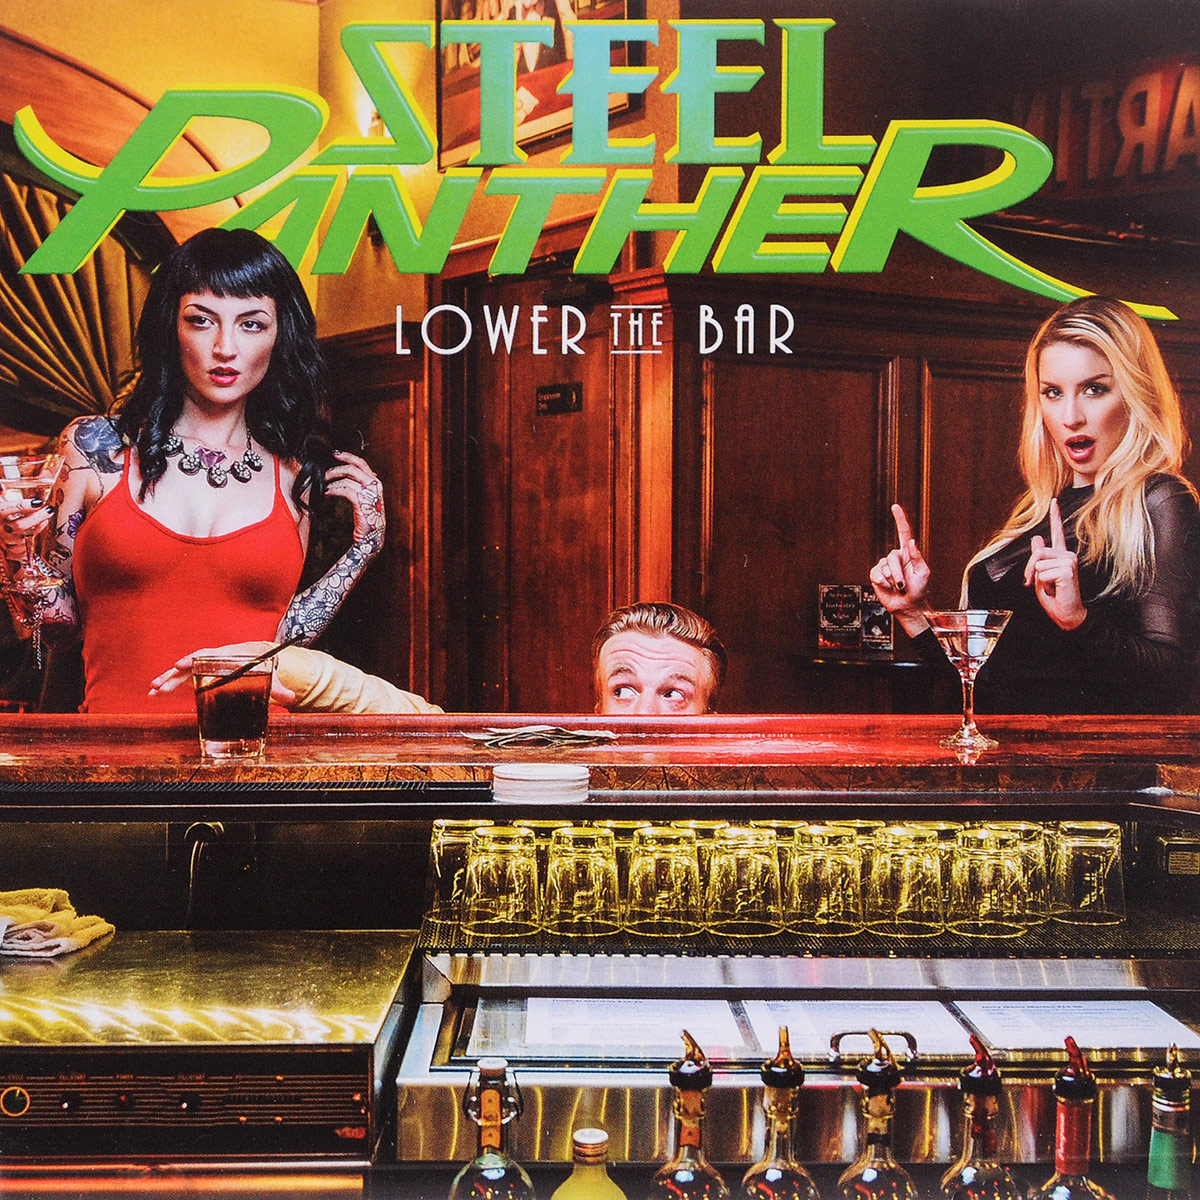 цена Steel Panther Steel Panther. Lower The Bar онлайн в 2017 году